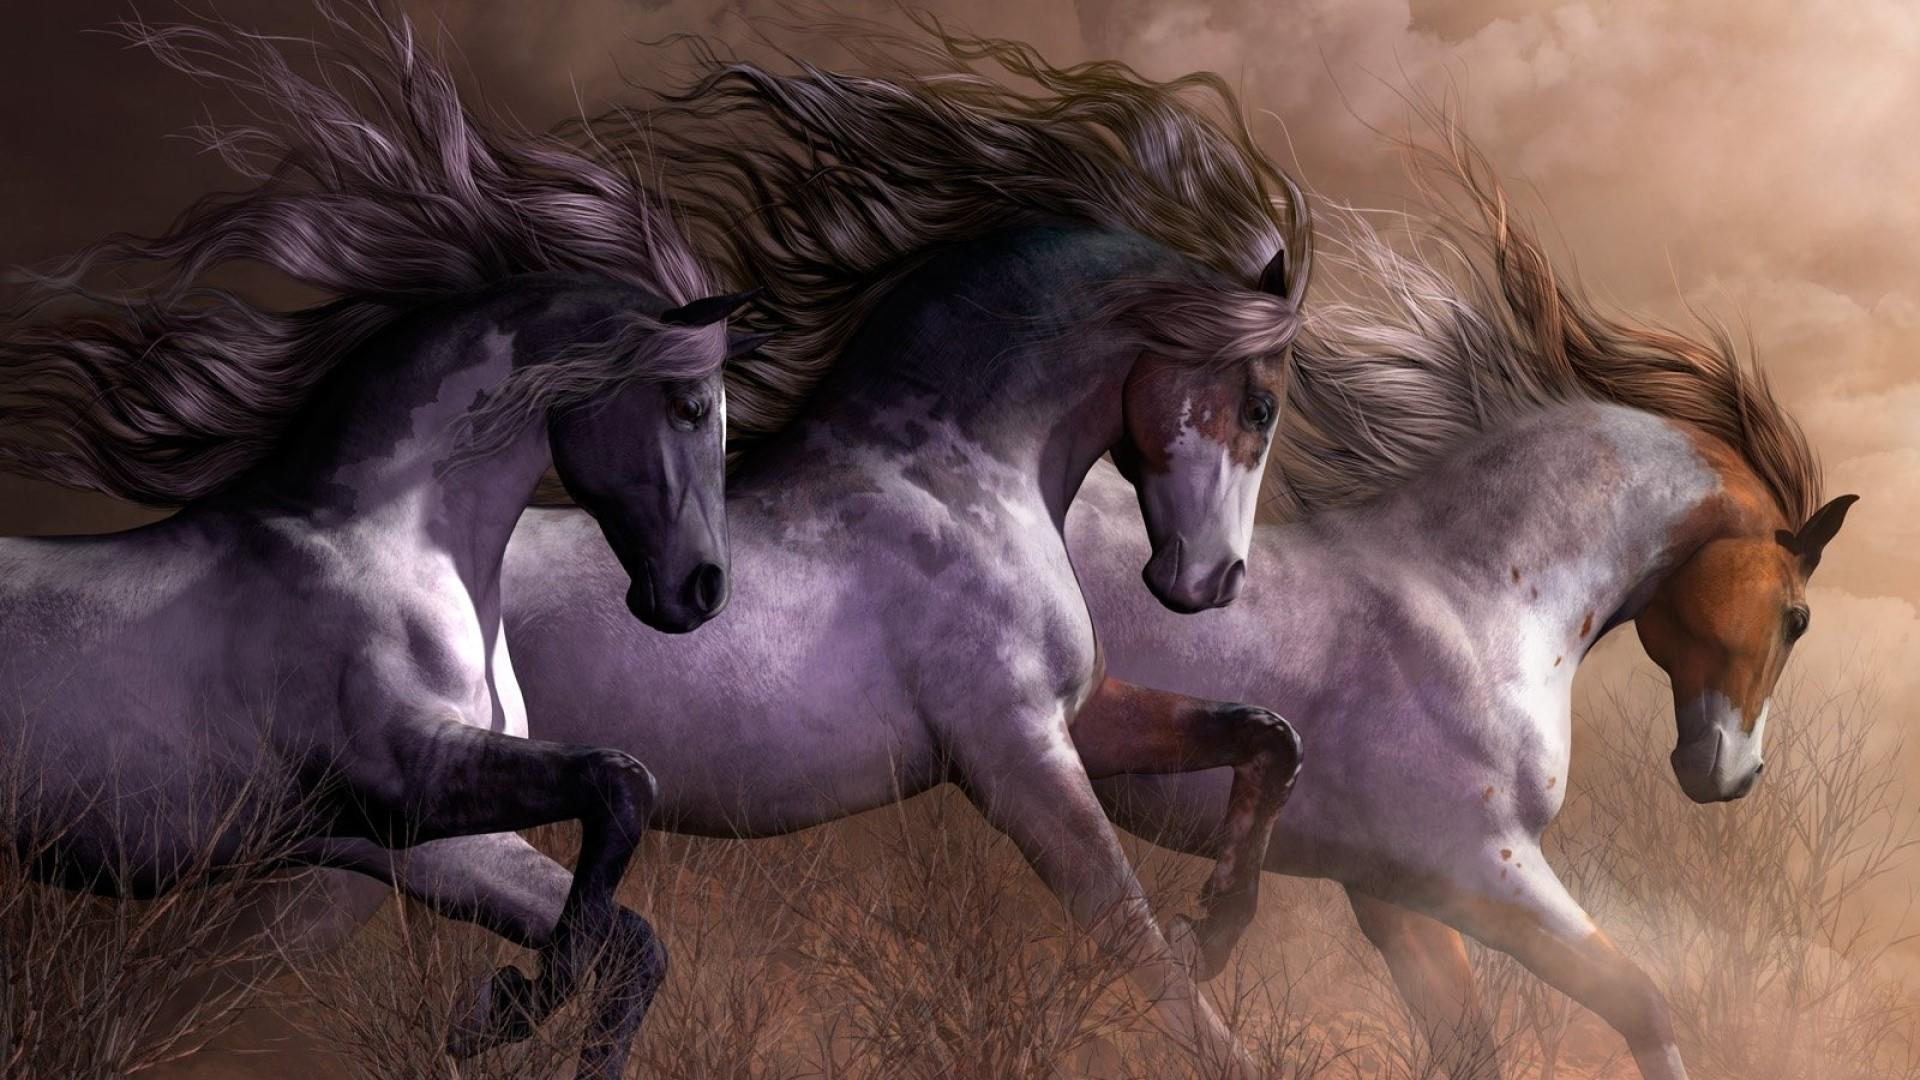 Galloping wild horses  wallpaper